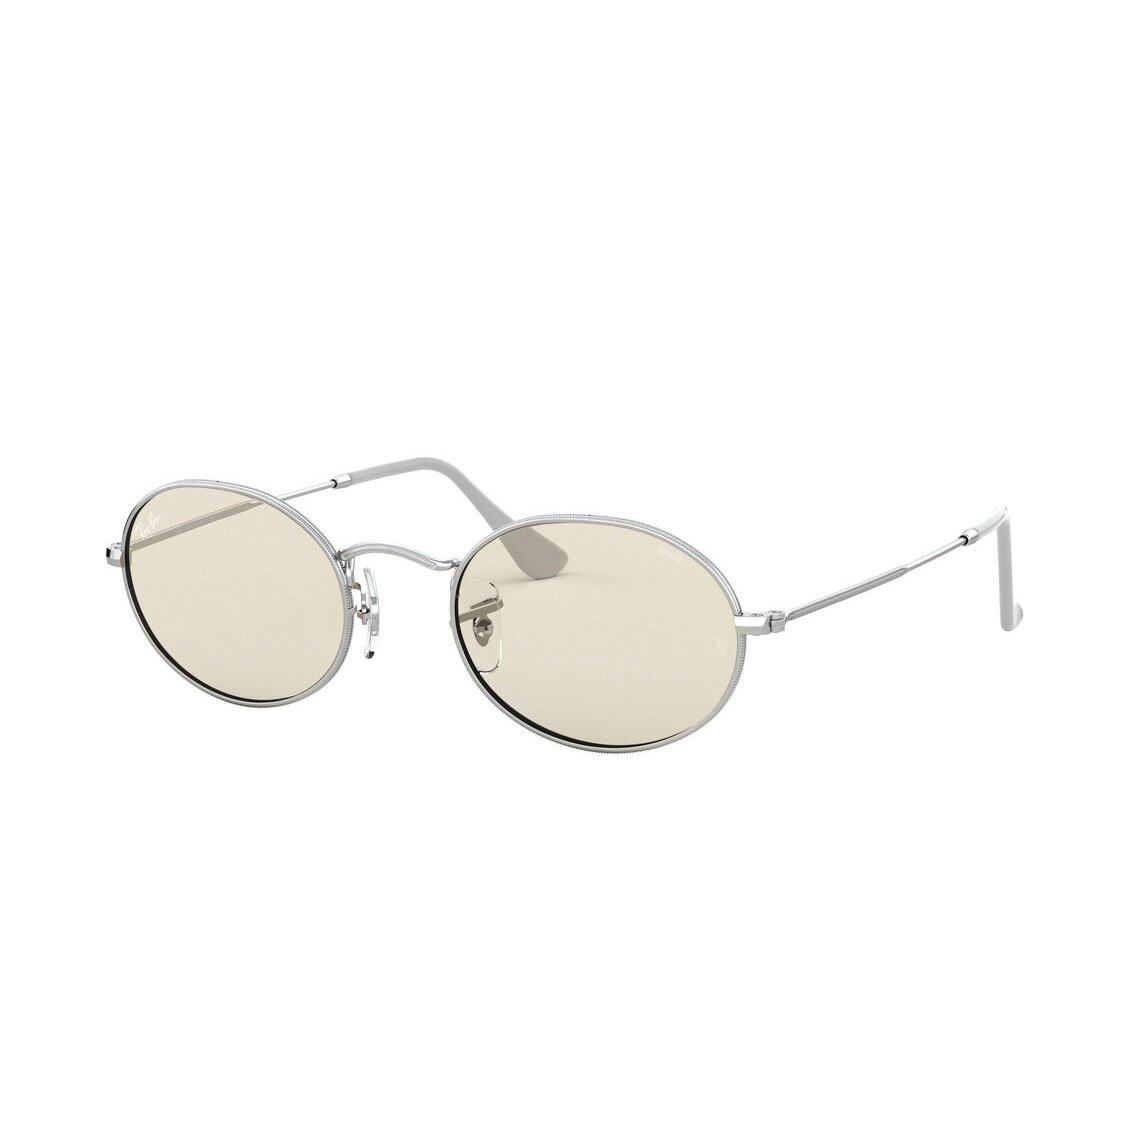 Ray-Ban Oval Solid Evolve RB3547 003/T2 5121